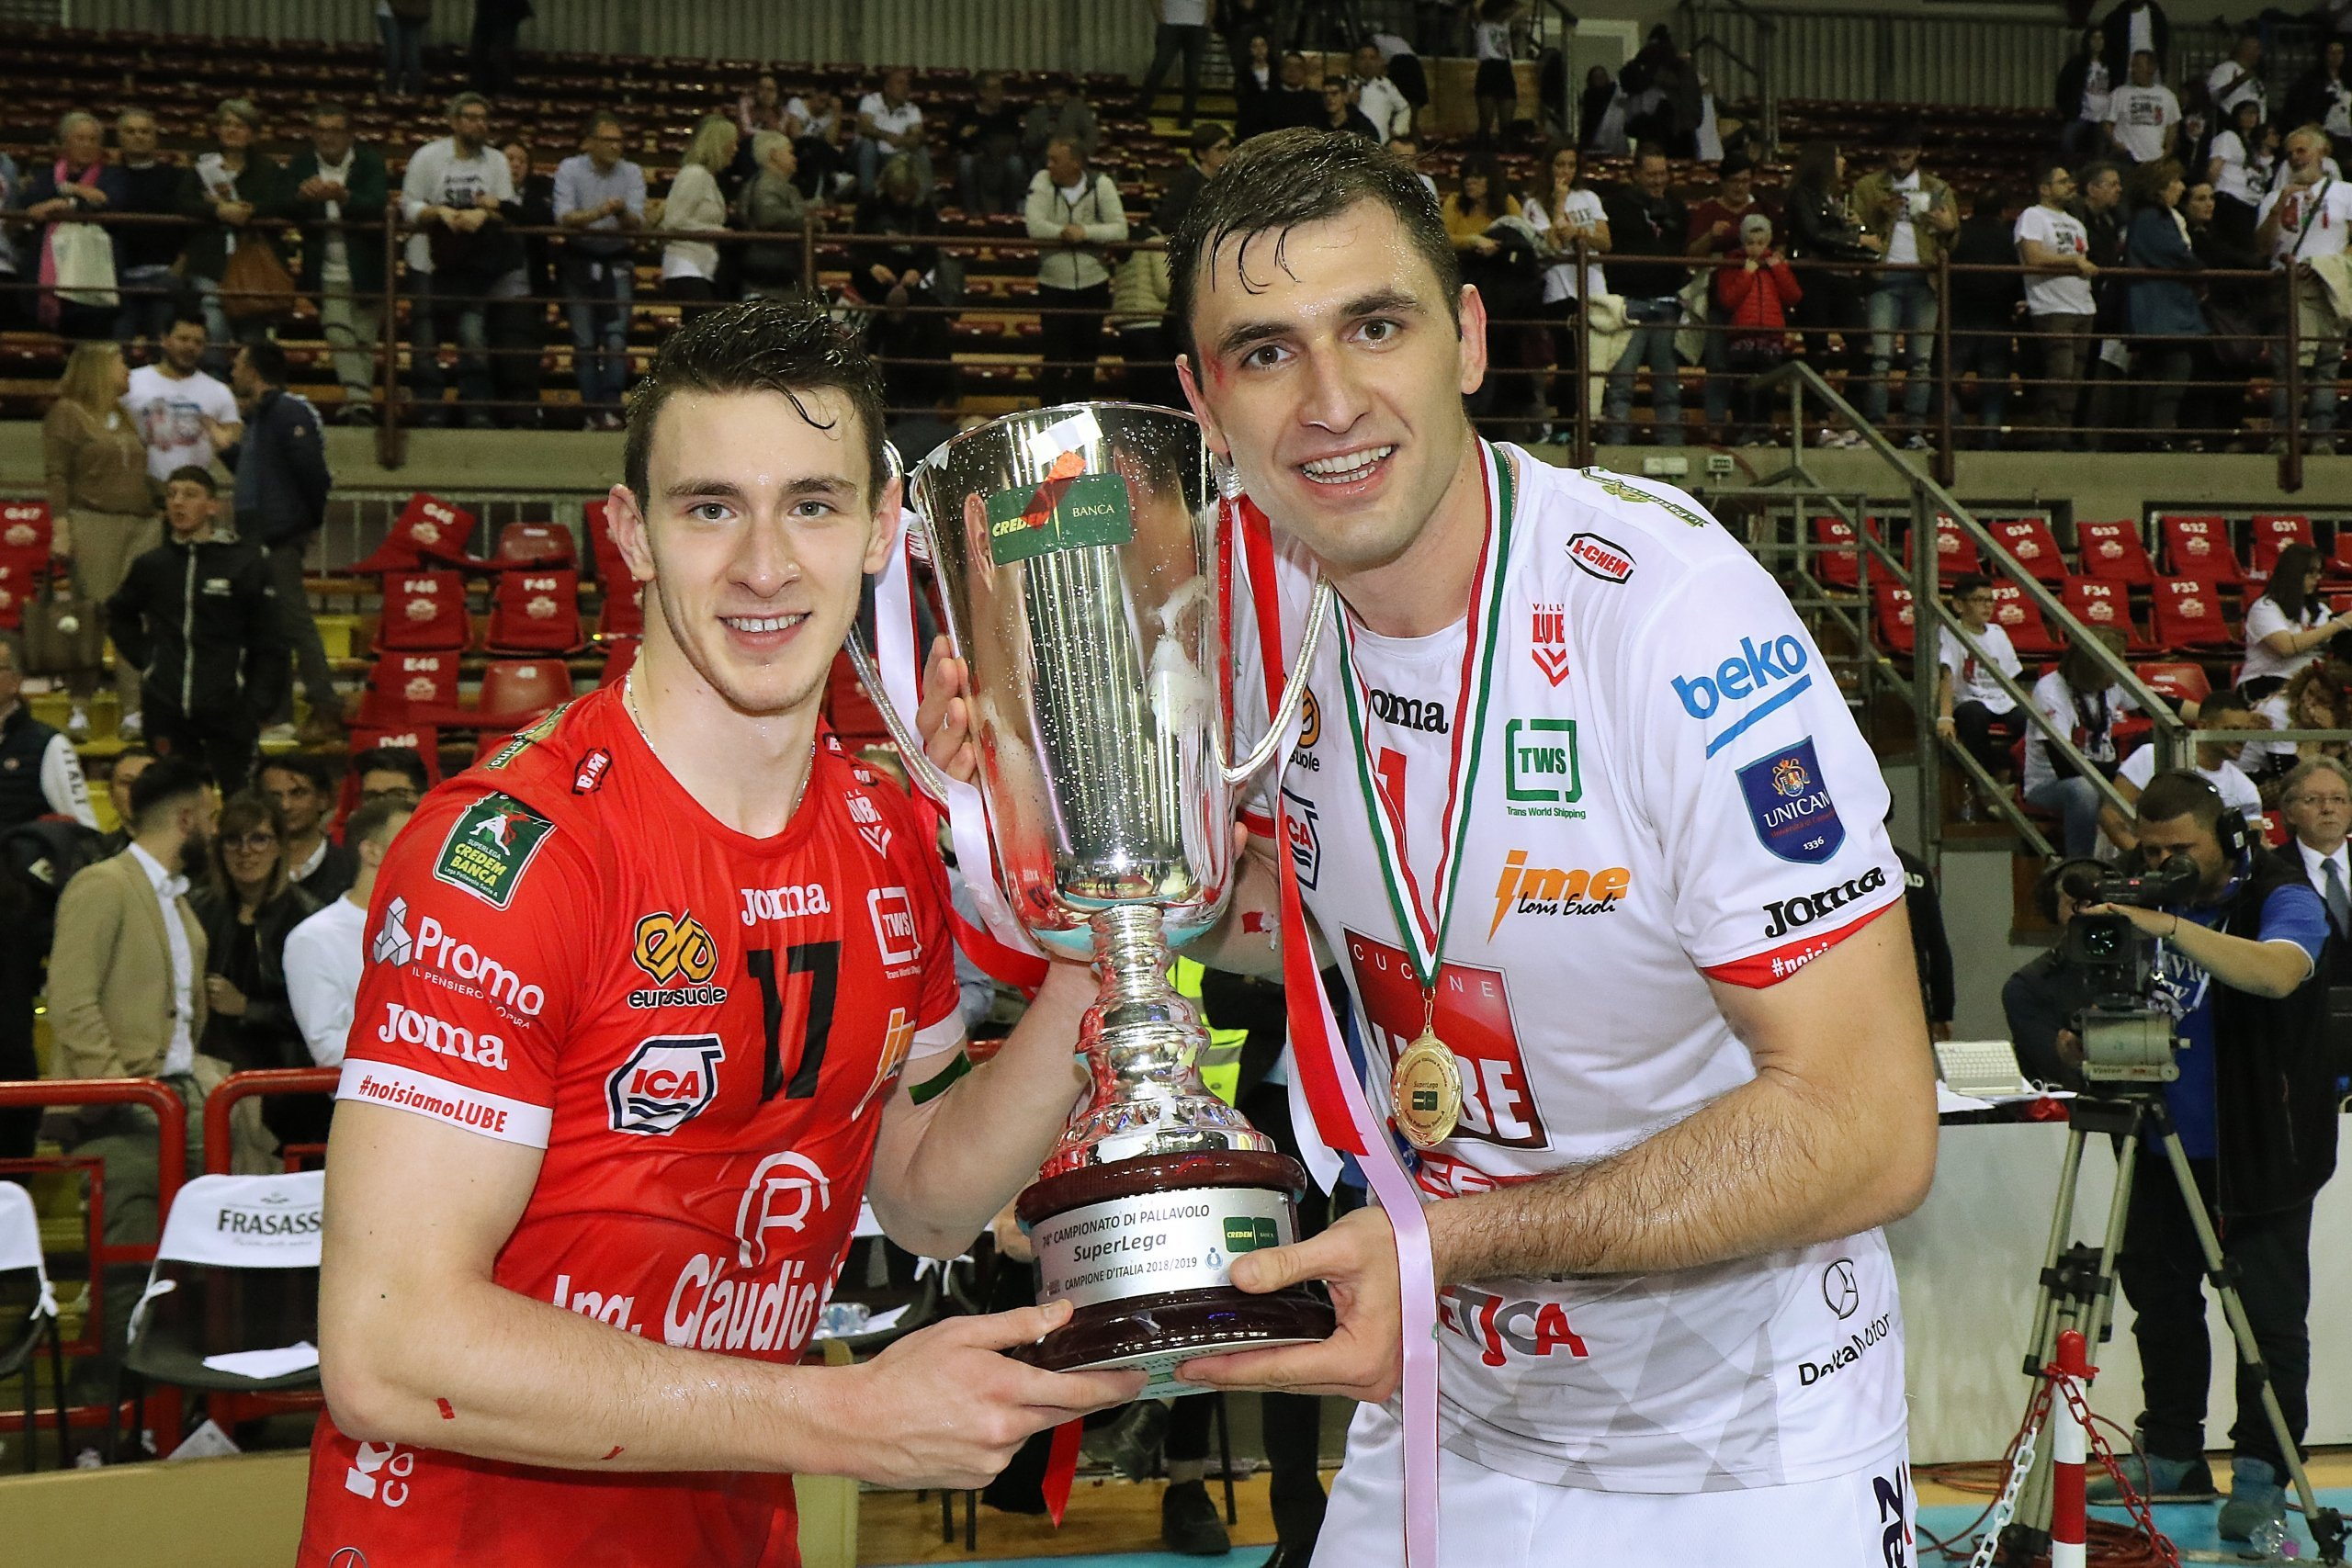 FABIO BALASO – 2019 ITALIAN SUPERLEGA CHAMPION